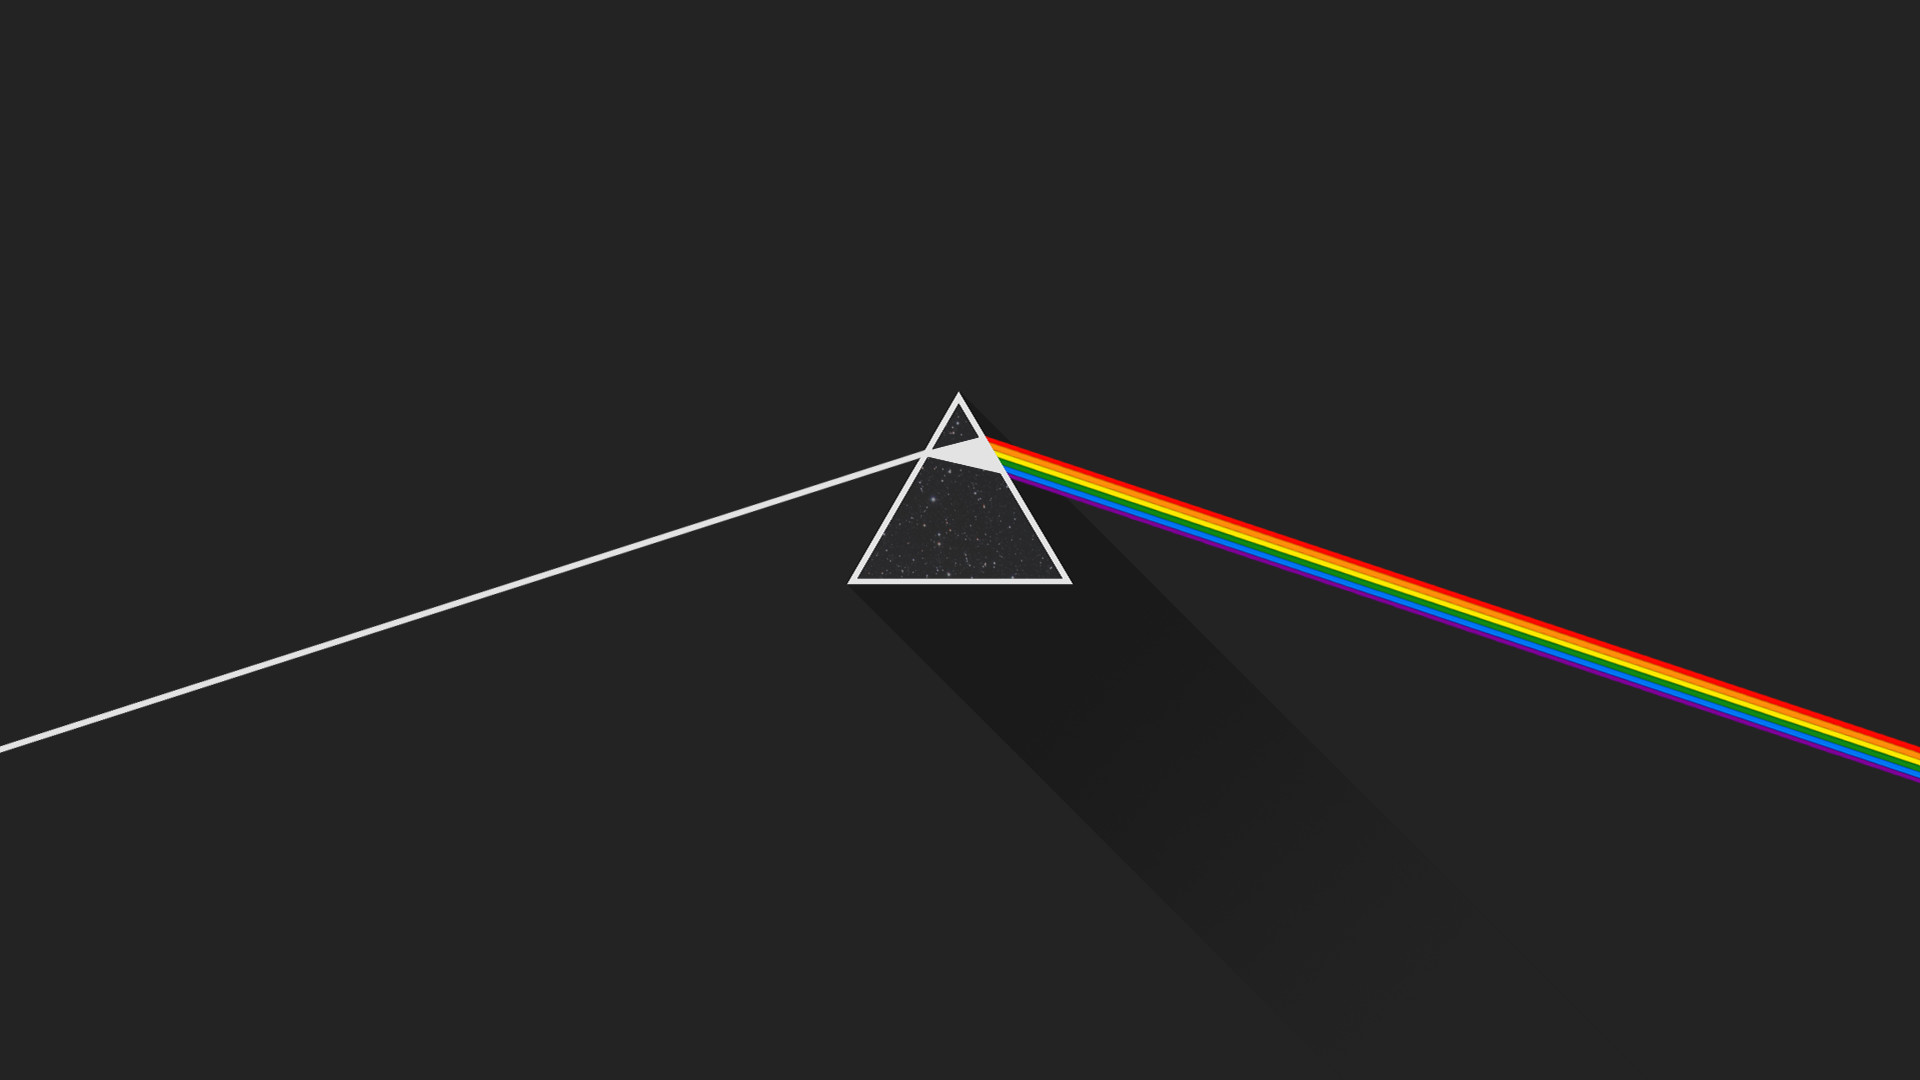 pink floyd wallpapers screensavers 74 images